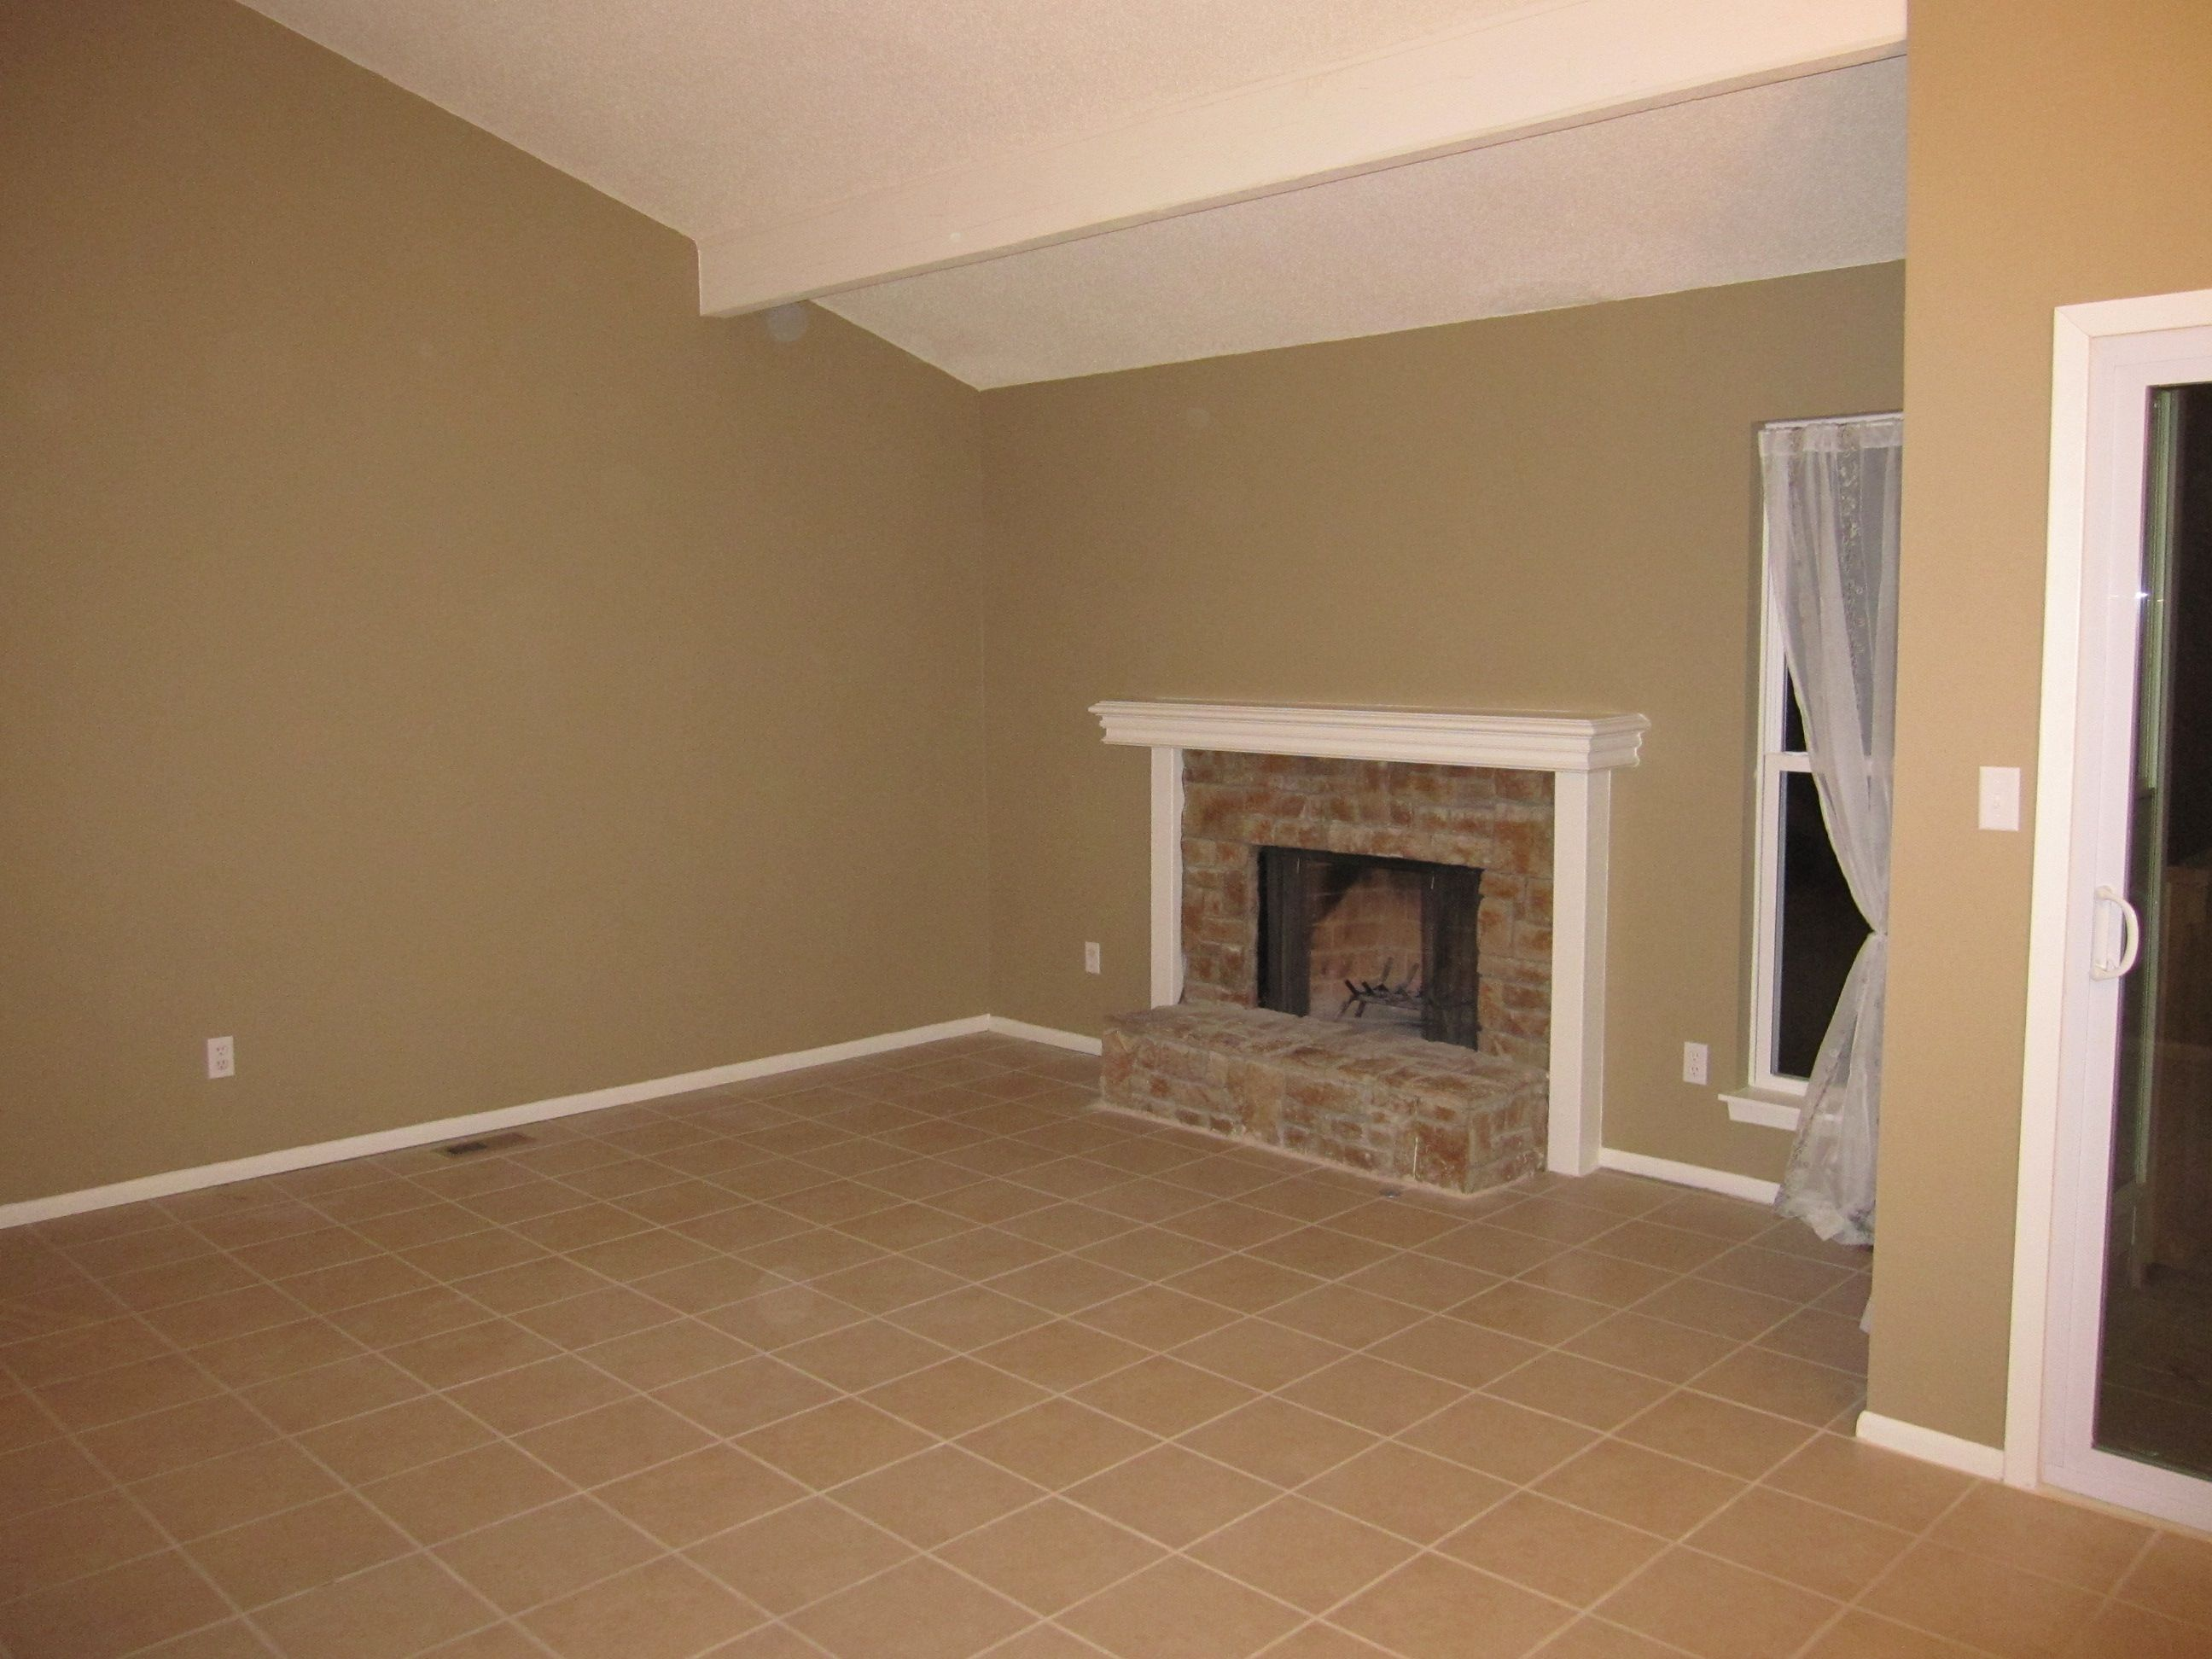 Tile Floor In Living/dining Room, Stone Fire Place, New Windows, Sawyer